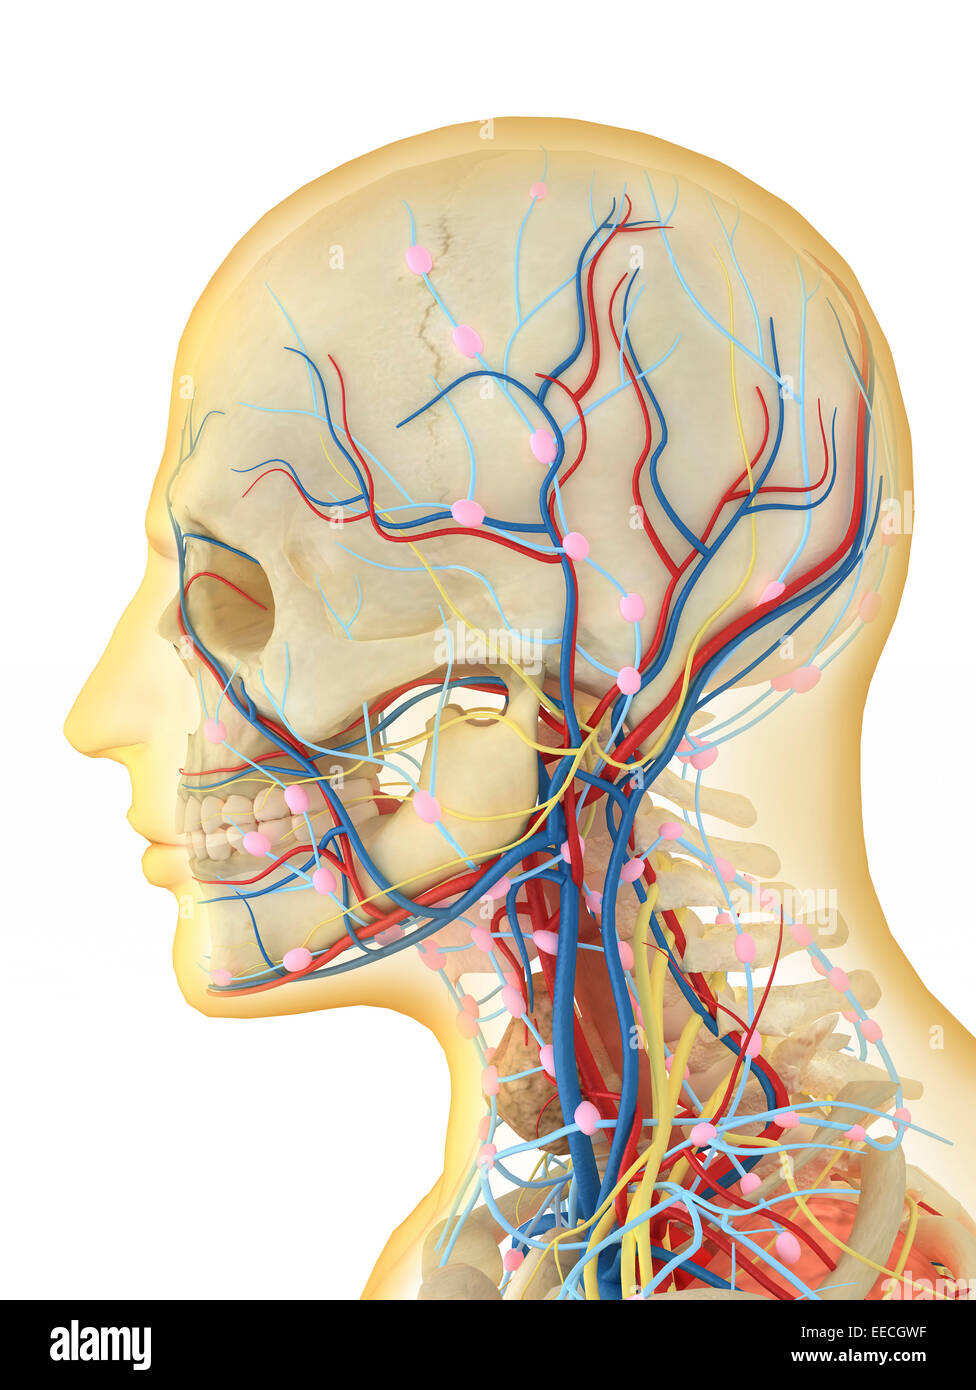 hight resolution of human face and neck area with internal throat parts nervous system lymphatic system and circulatory system